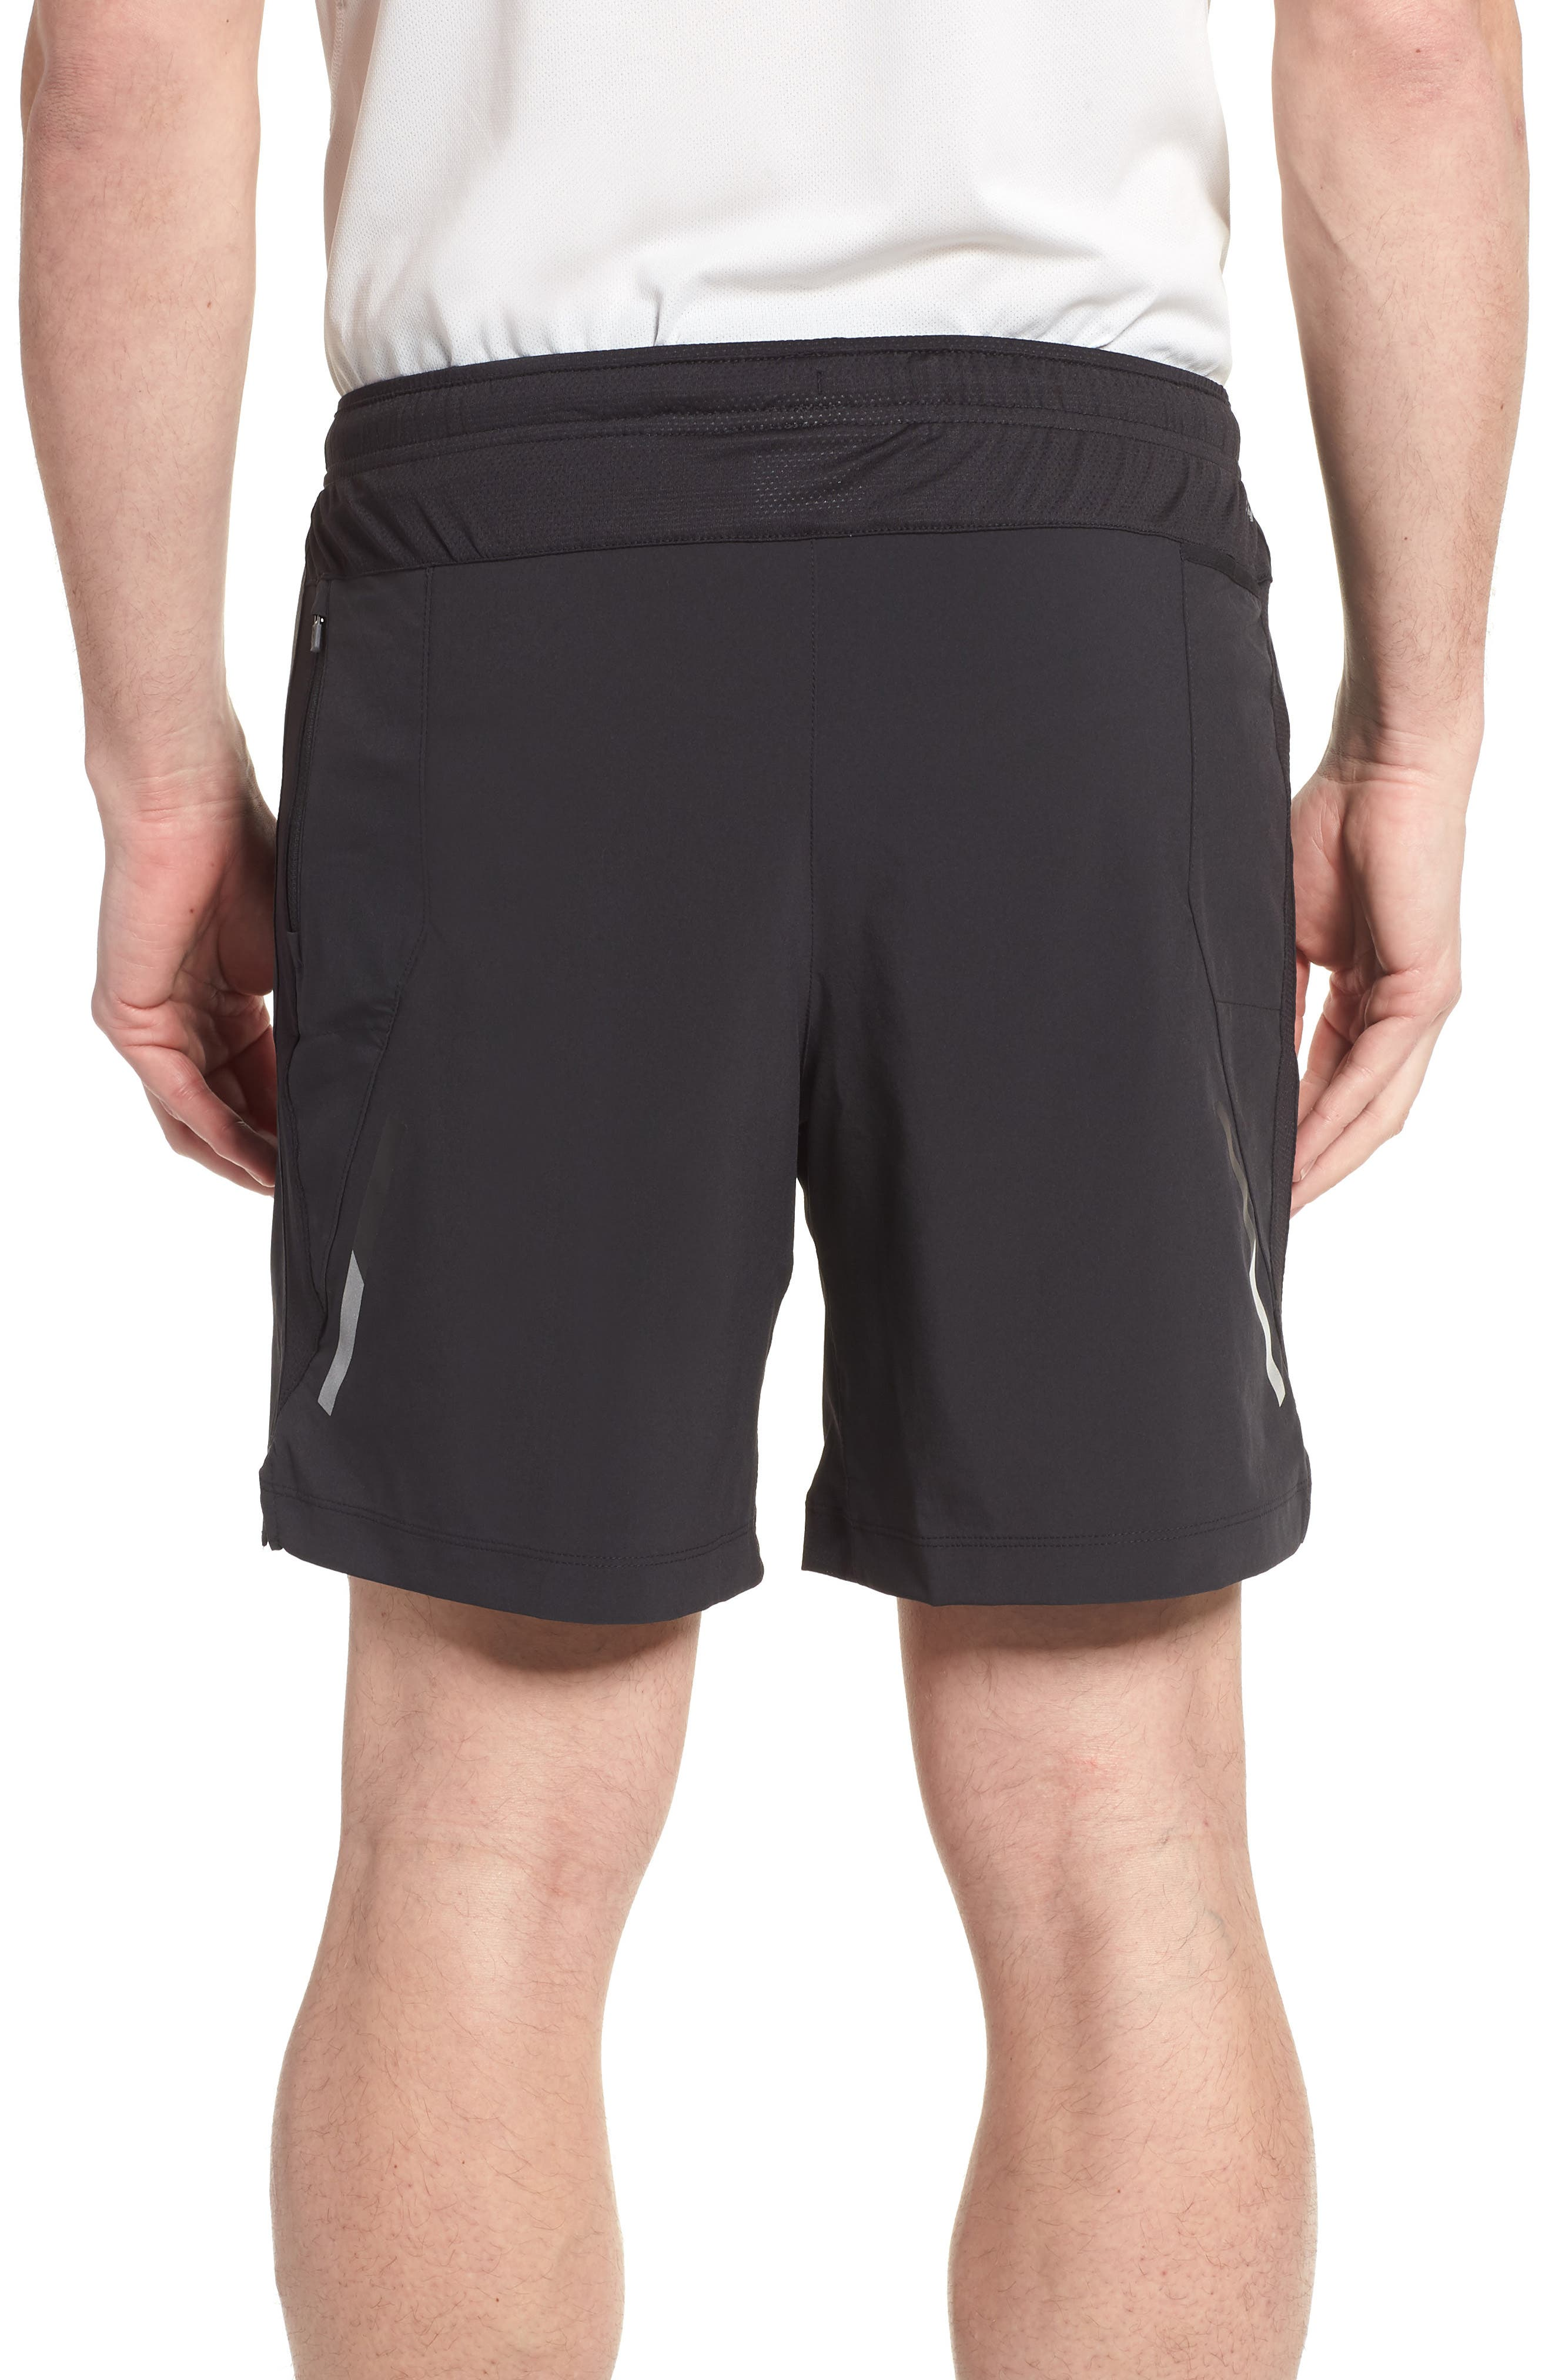 Impact Shorts,                             Alternate thumbnail 2, color,                             Black